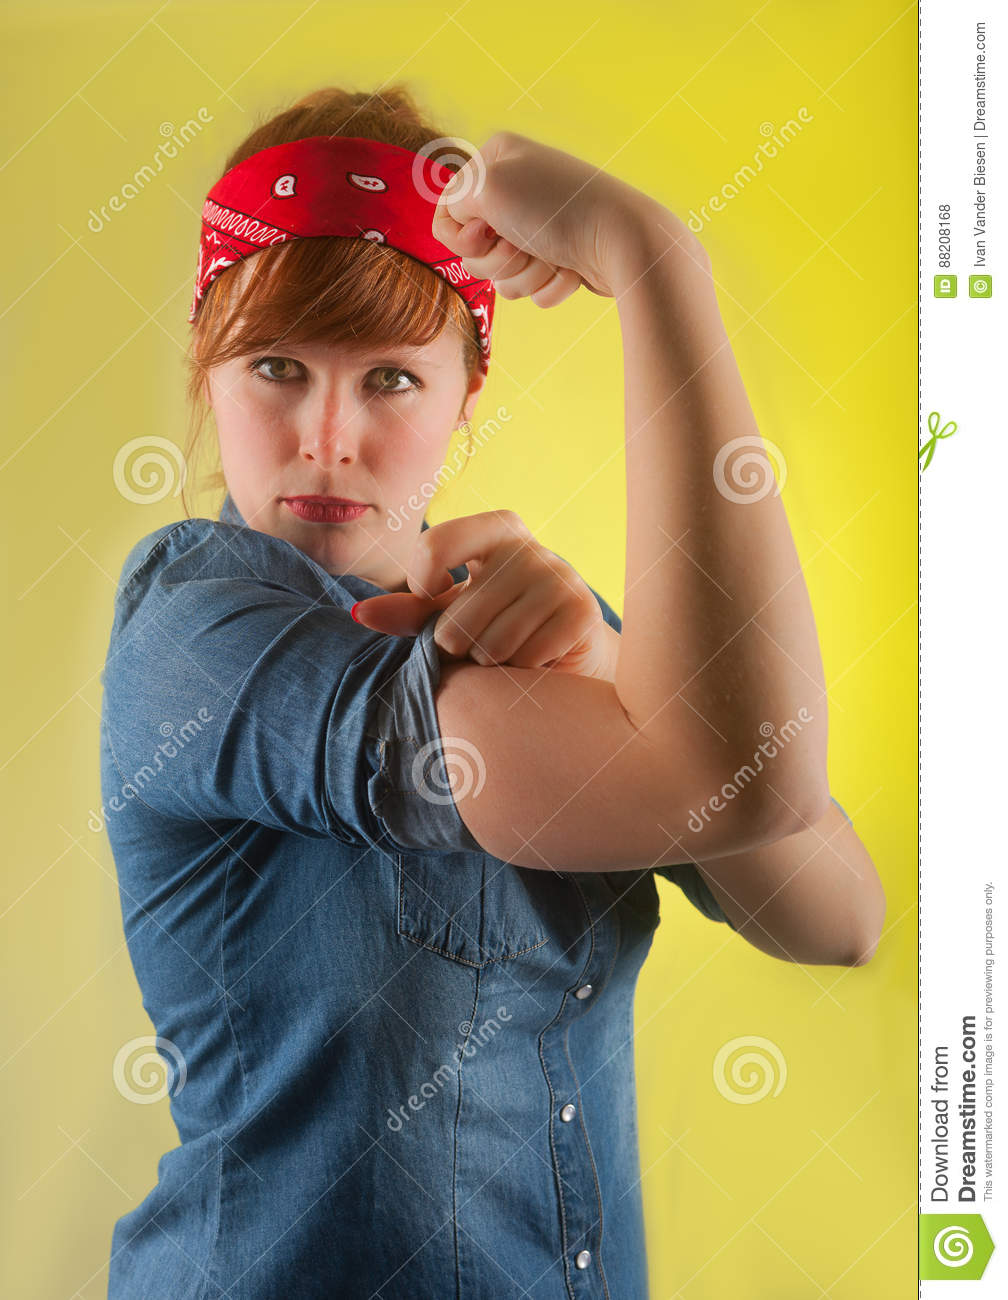 Strong woman after WW2 poster rosie the riveter